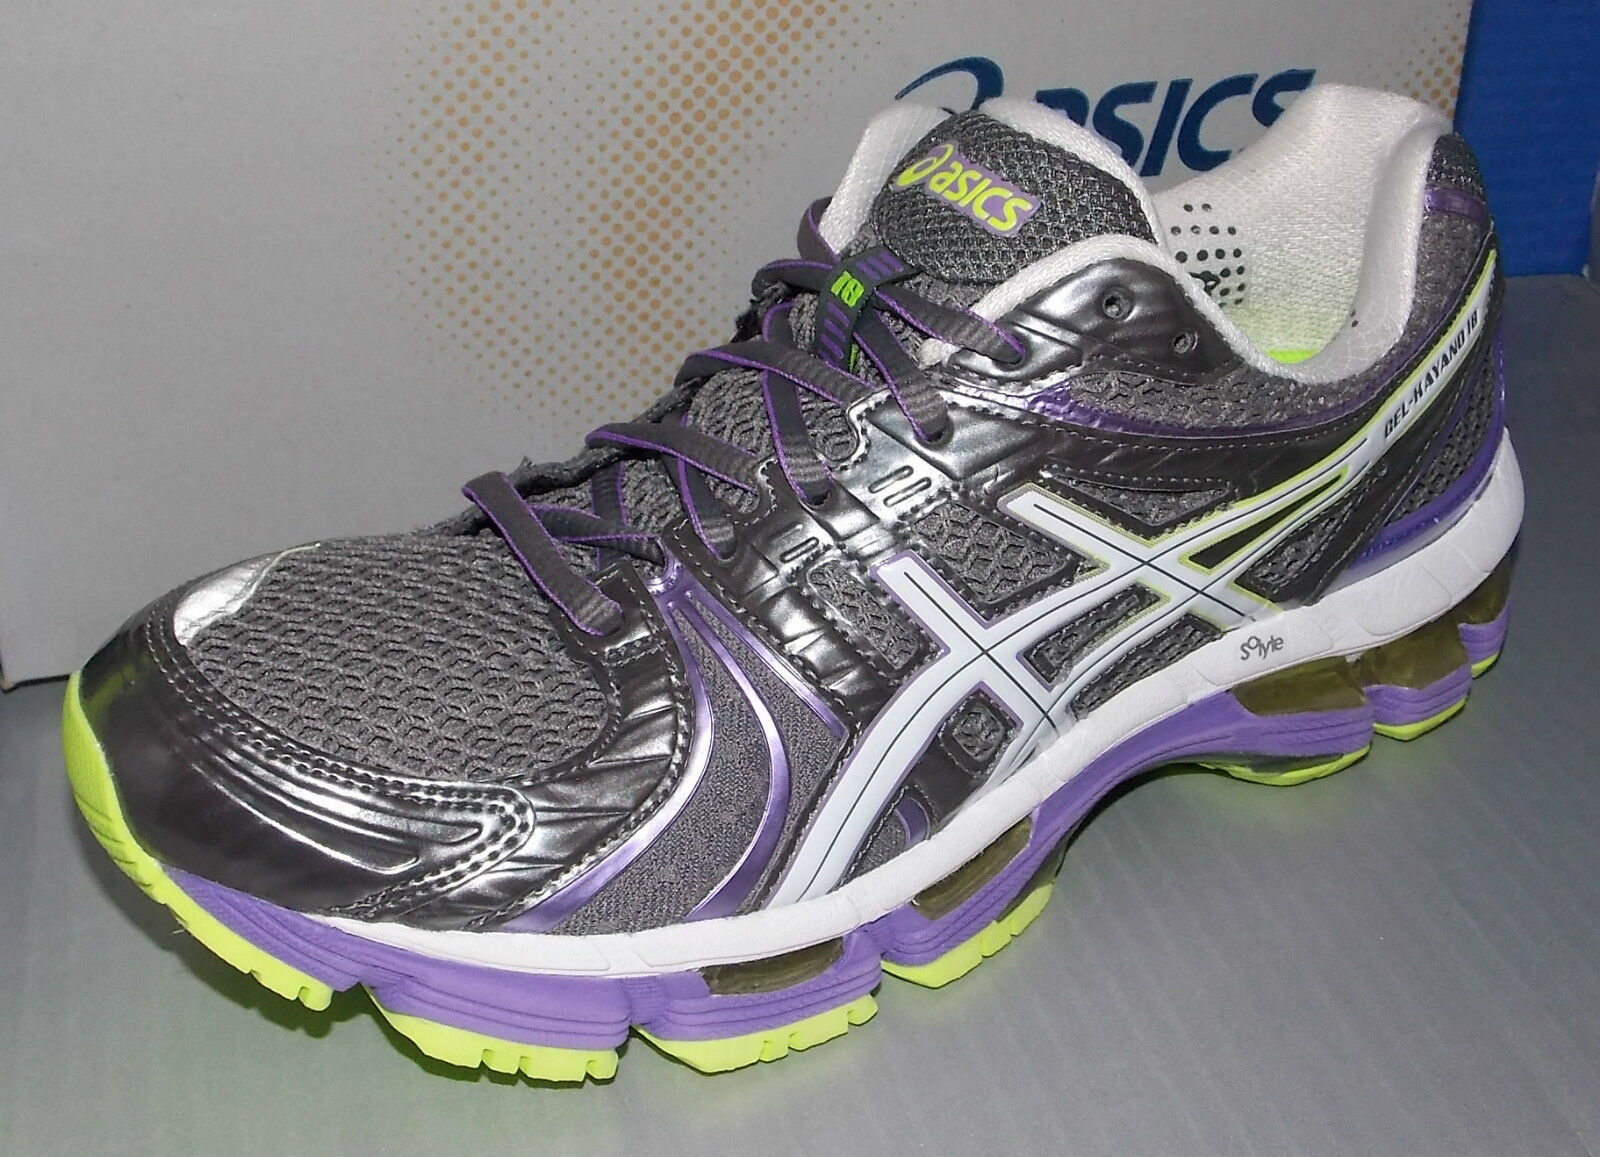 WOMENS ASICS GEL - KAYANO 18 in in in colors TITANIUM   WHITE   NEON PURPLE SIZE 6 c503c4